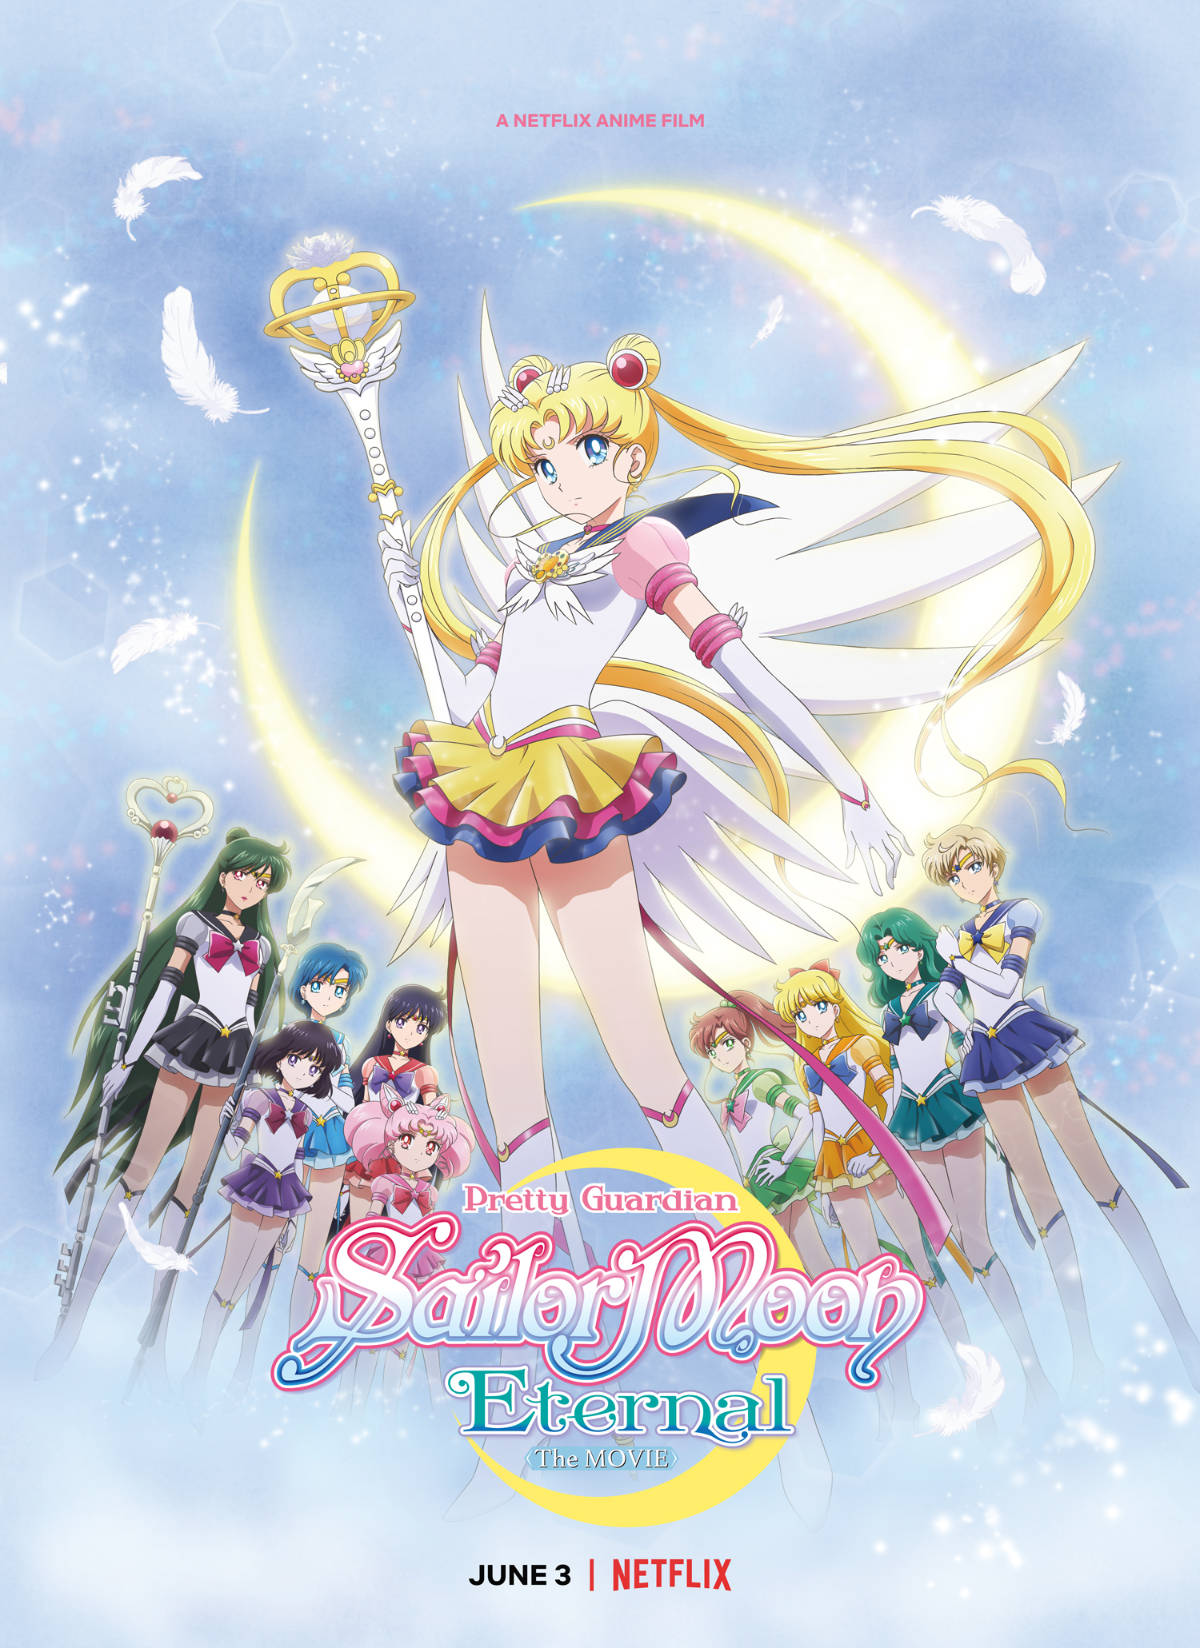 Pretty Guardian Sailor Moon Eternal The Movie Poster